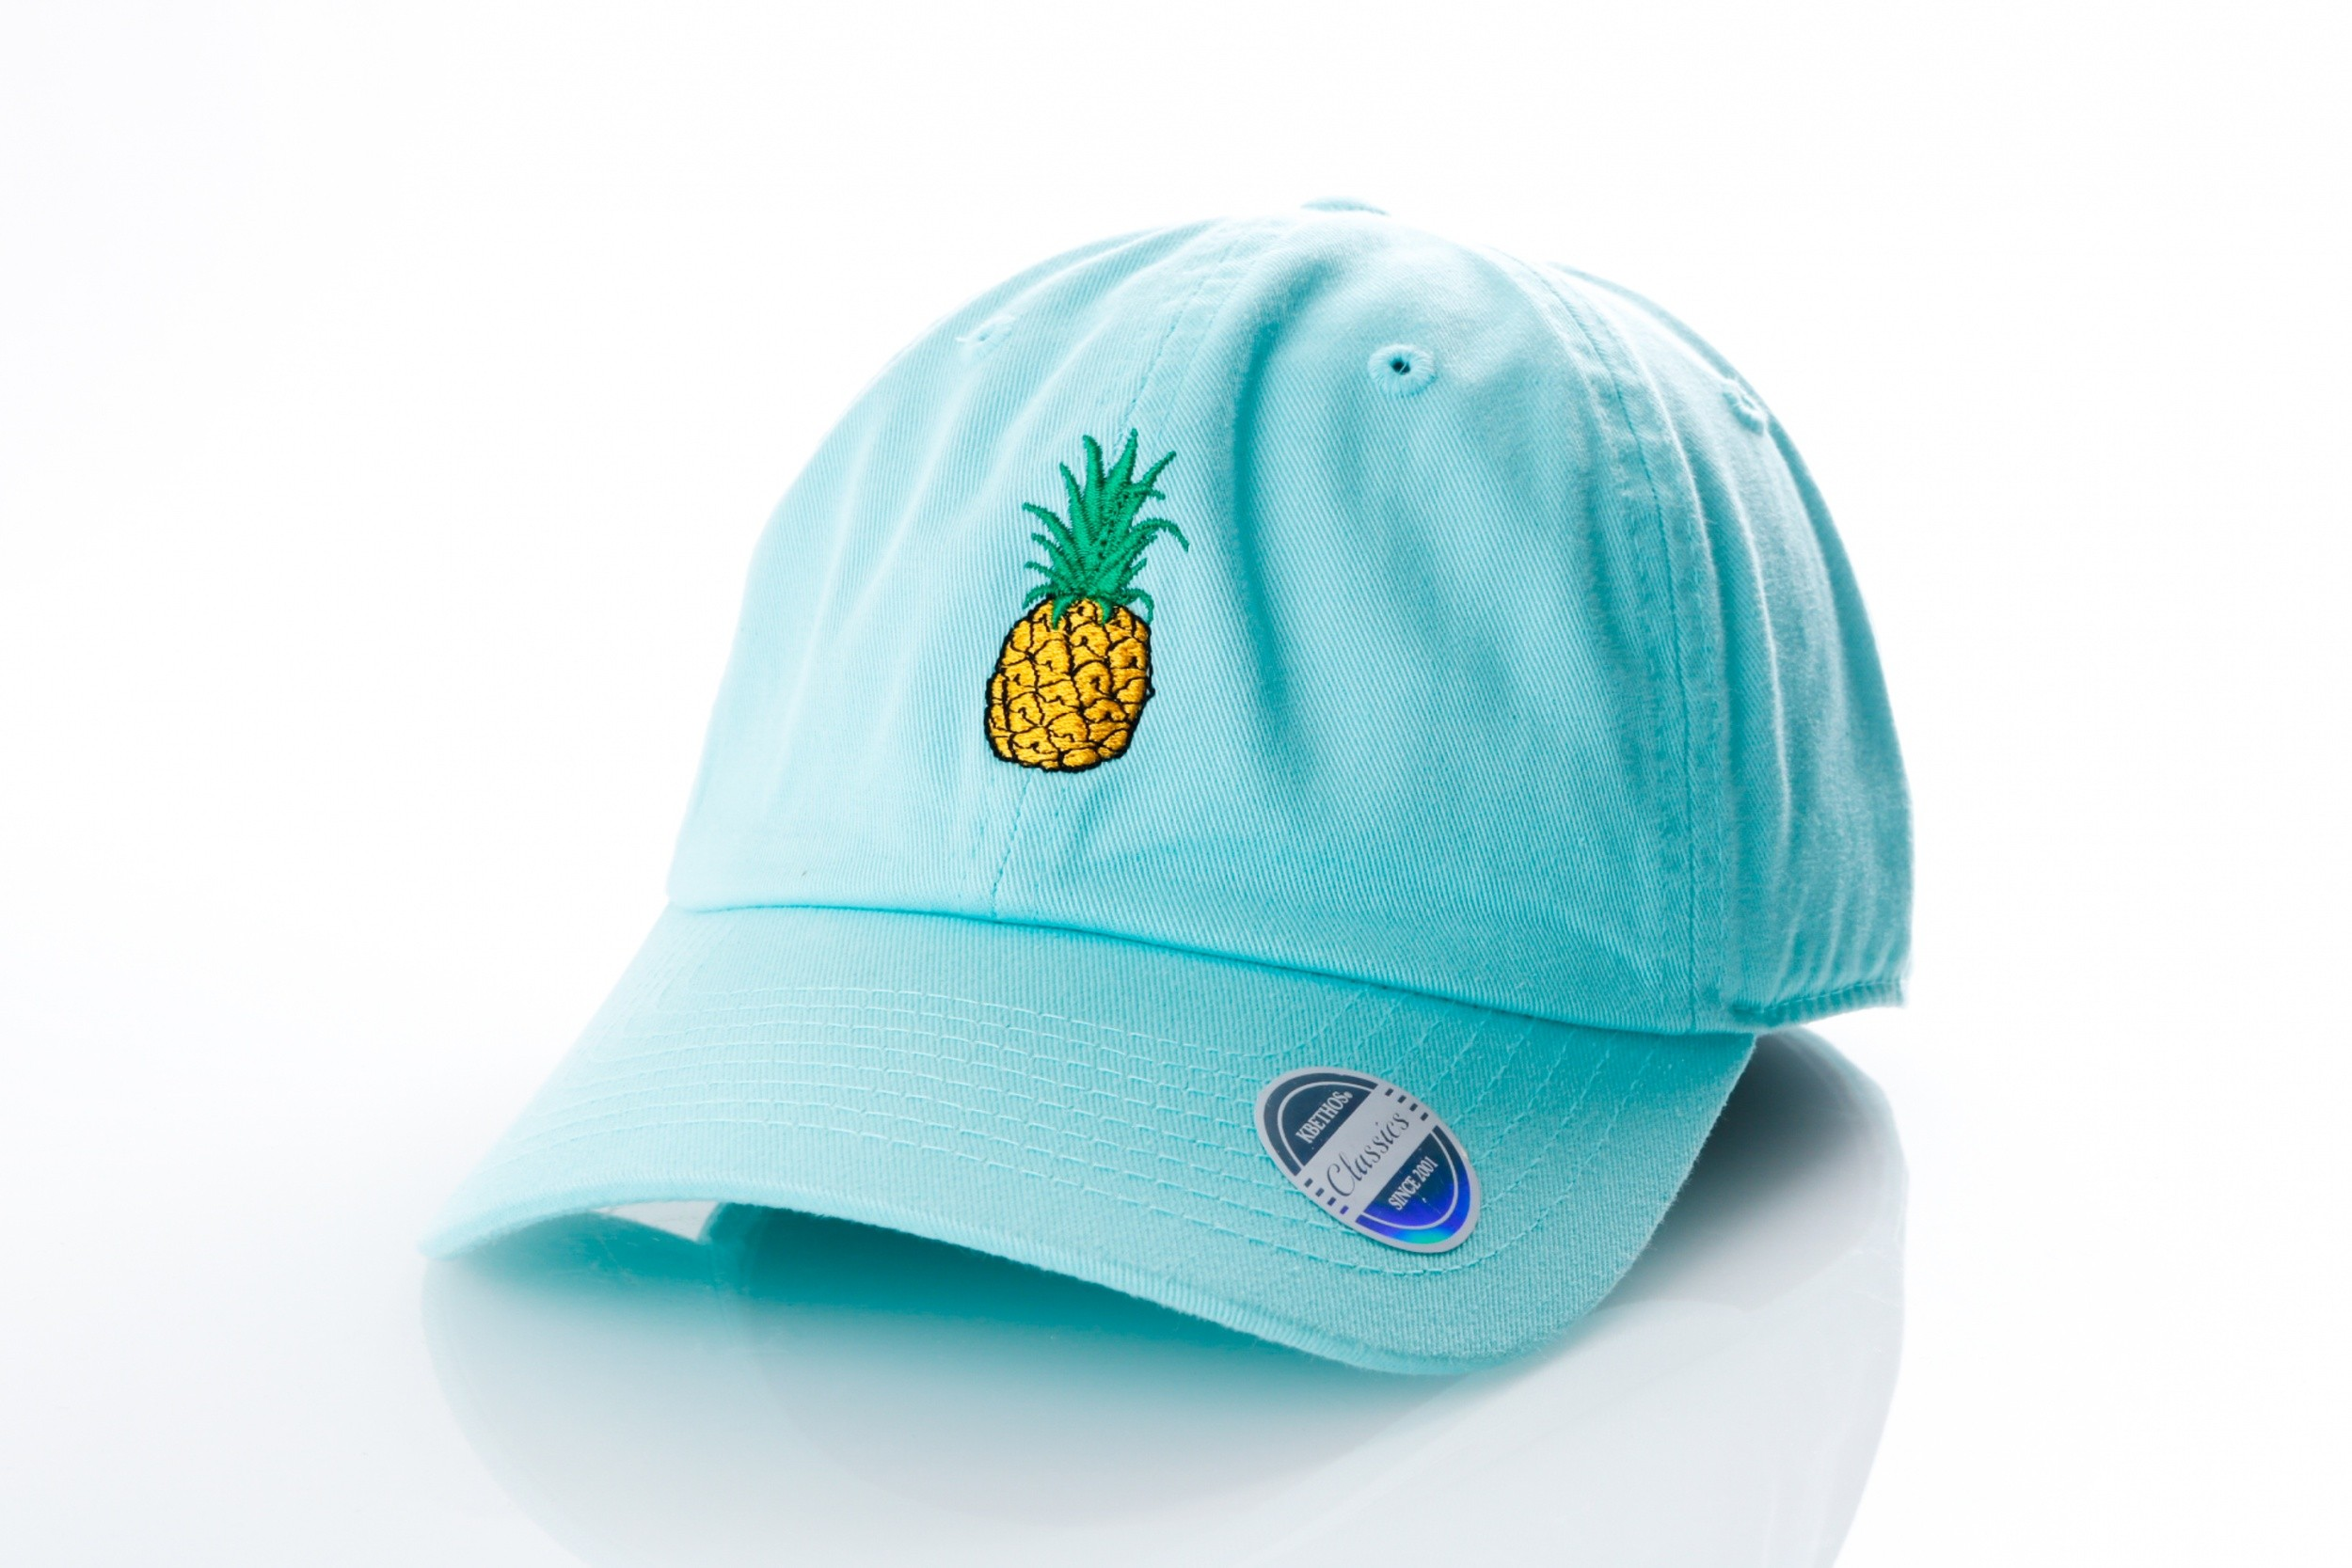 Foto van Ethos Pineapple KBSV-021 mint KBSV-021 dad cap mint